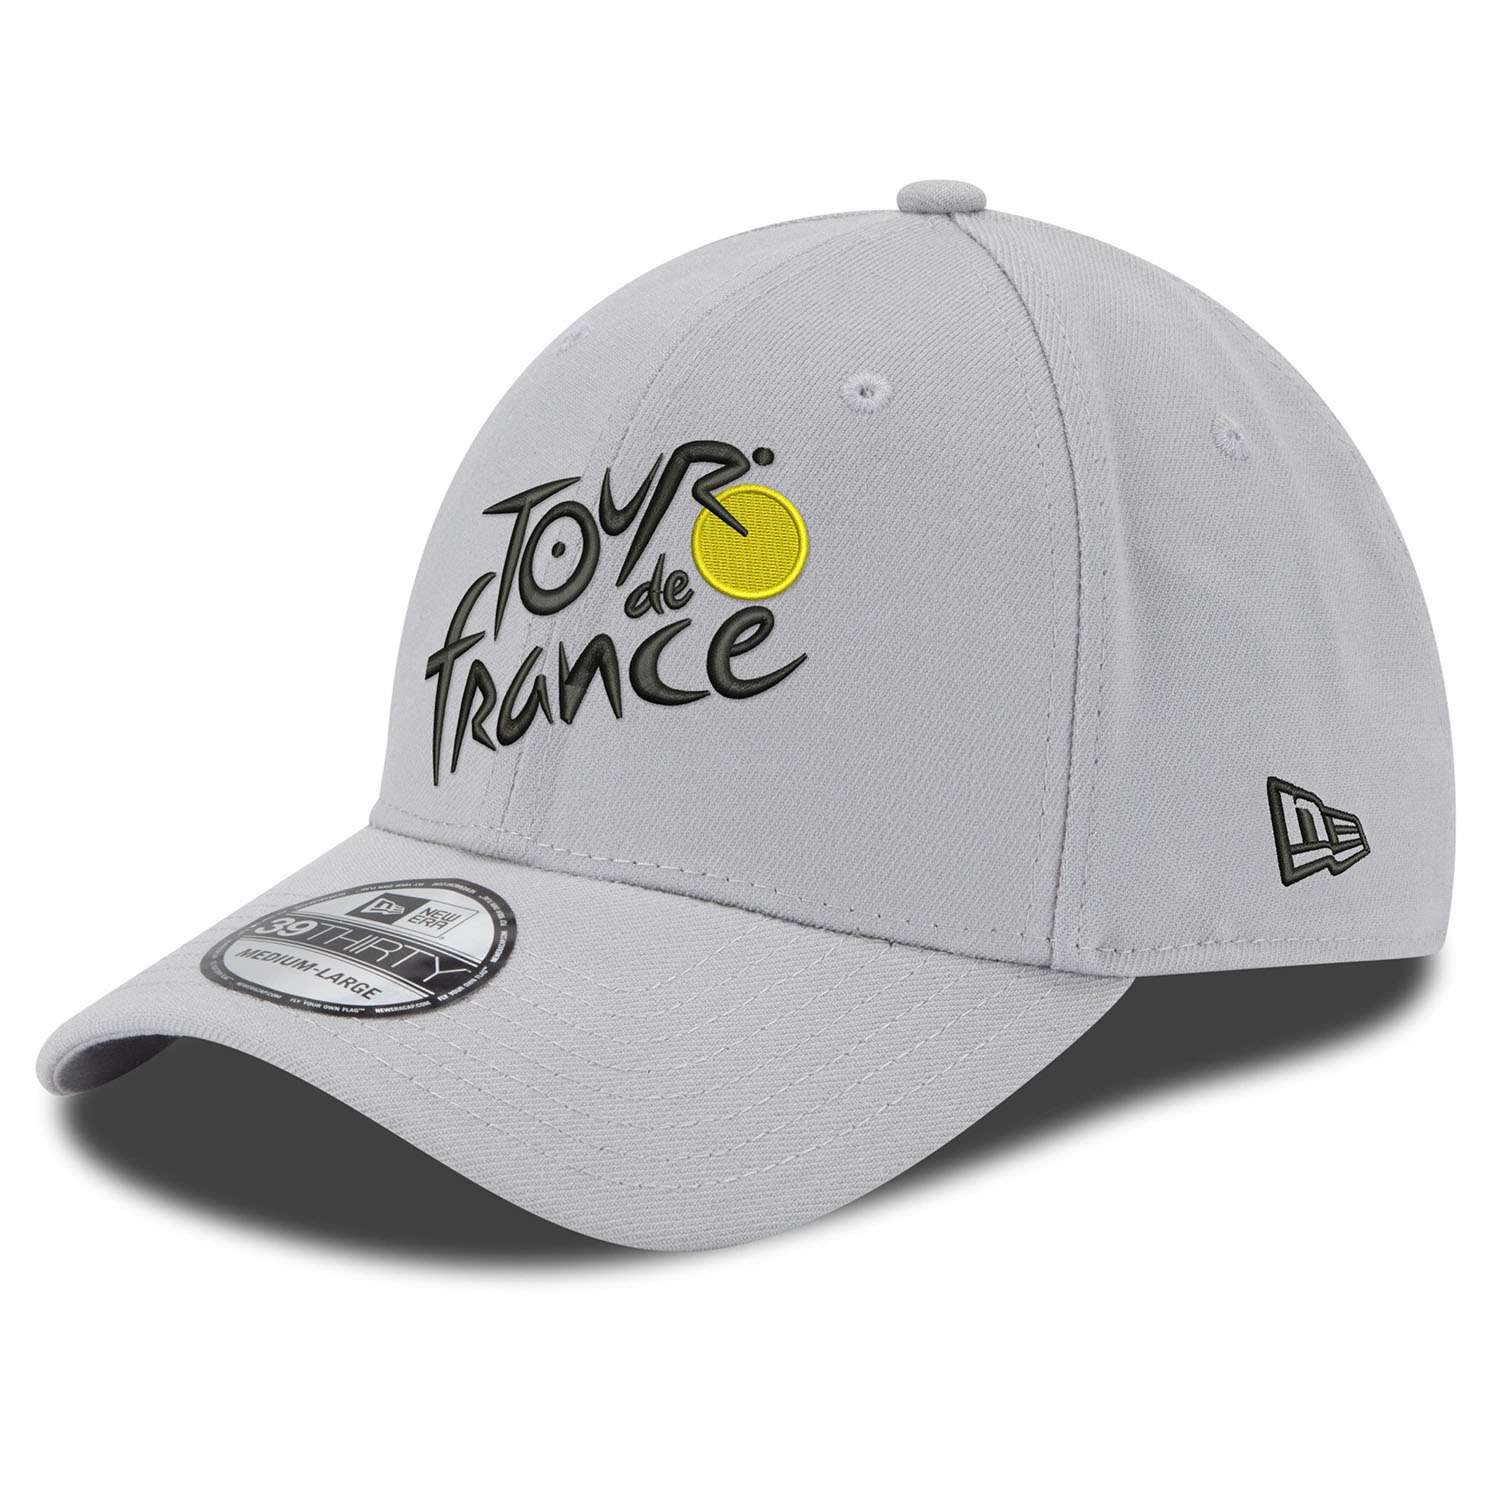 Hat: Cycling - Tour de France Gray 39THIRTY Photo